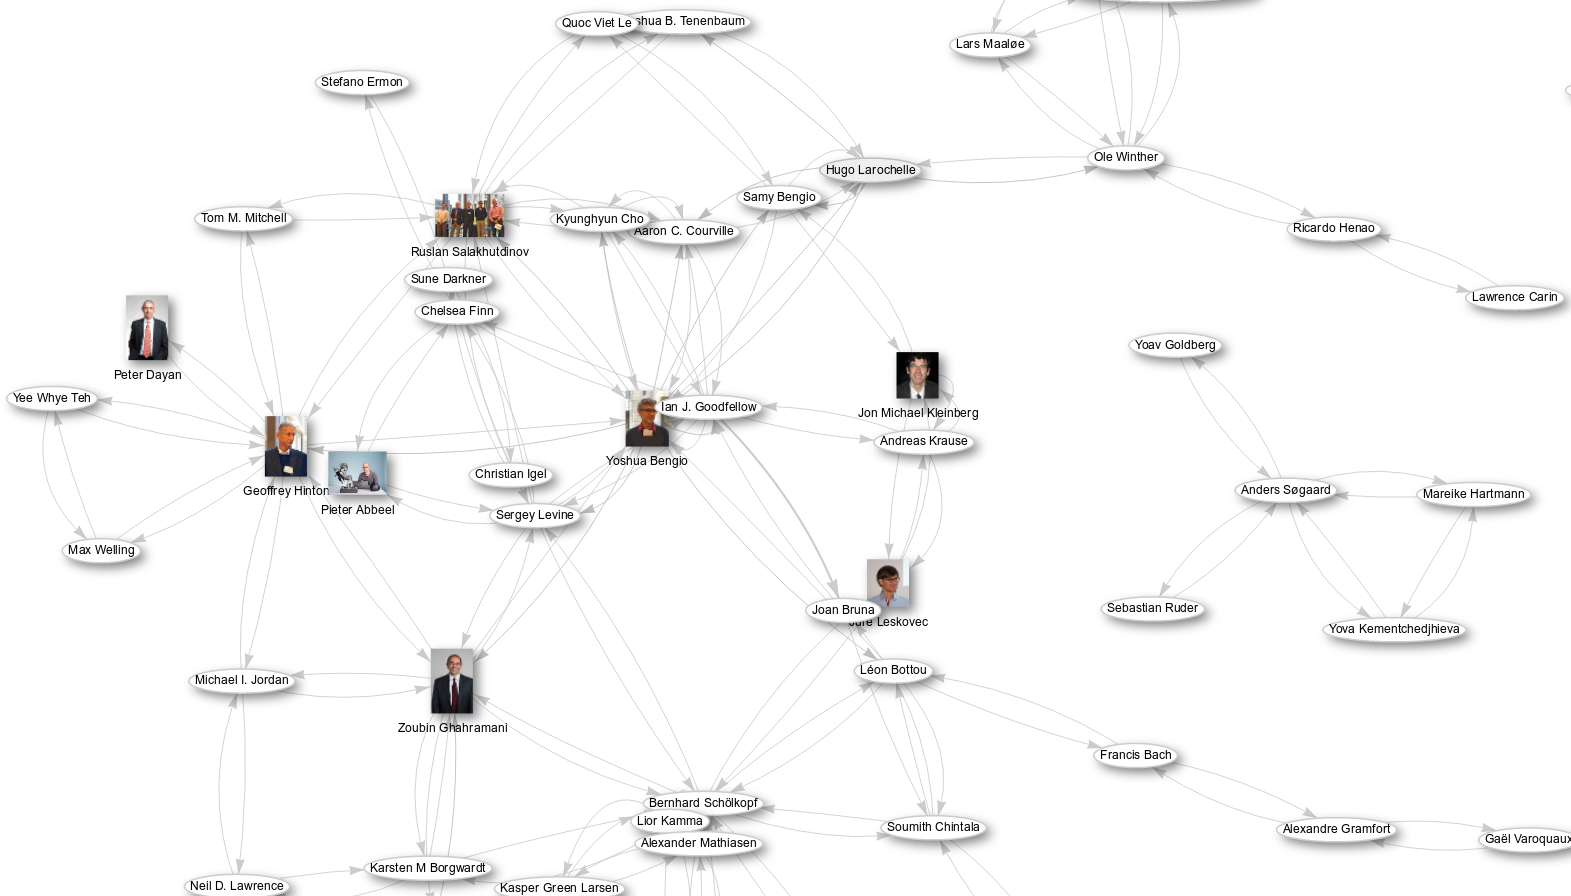 scholia-neurips-2019-co-authors.png